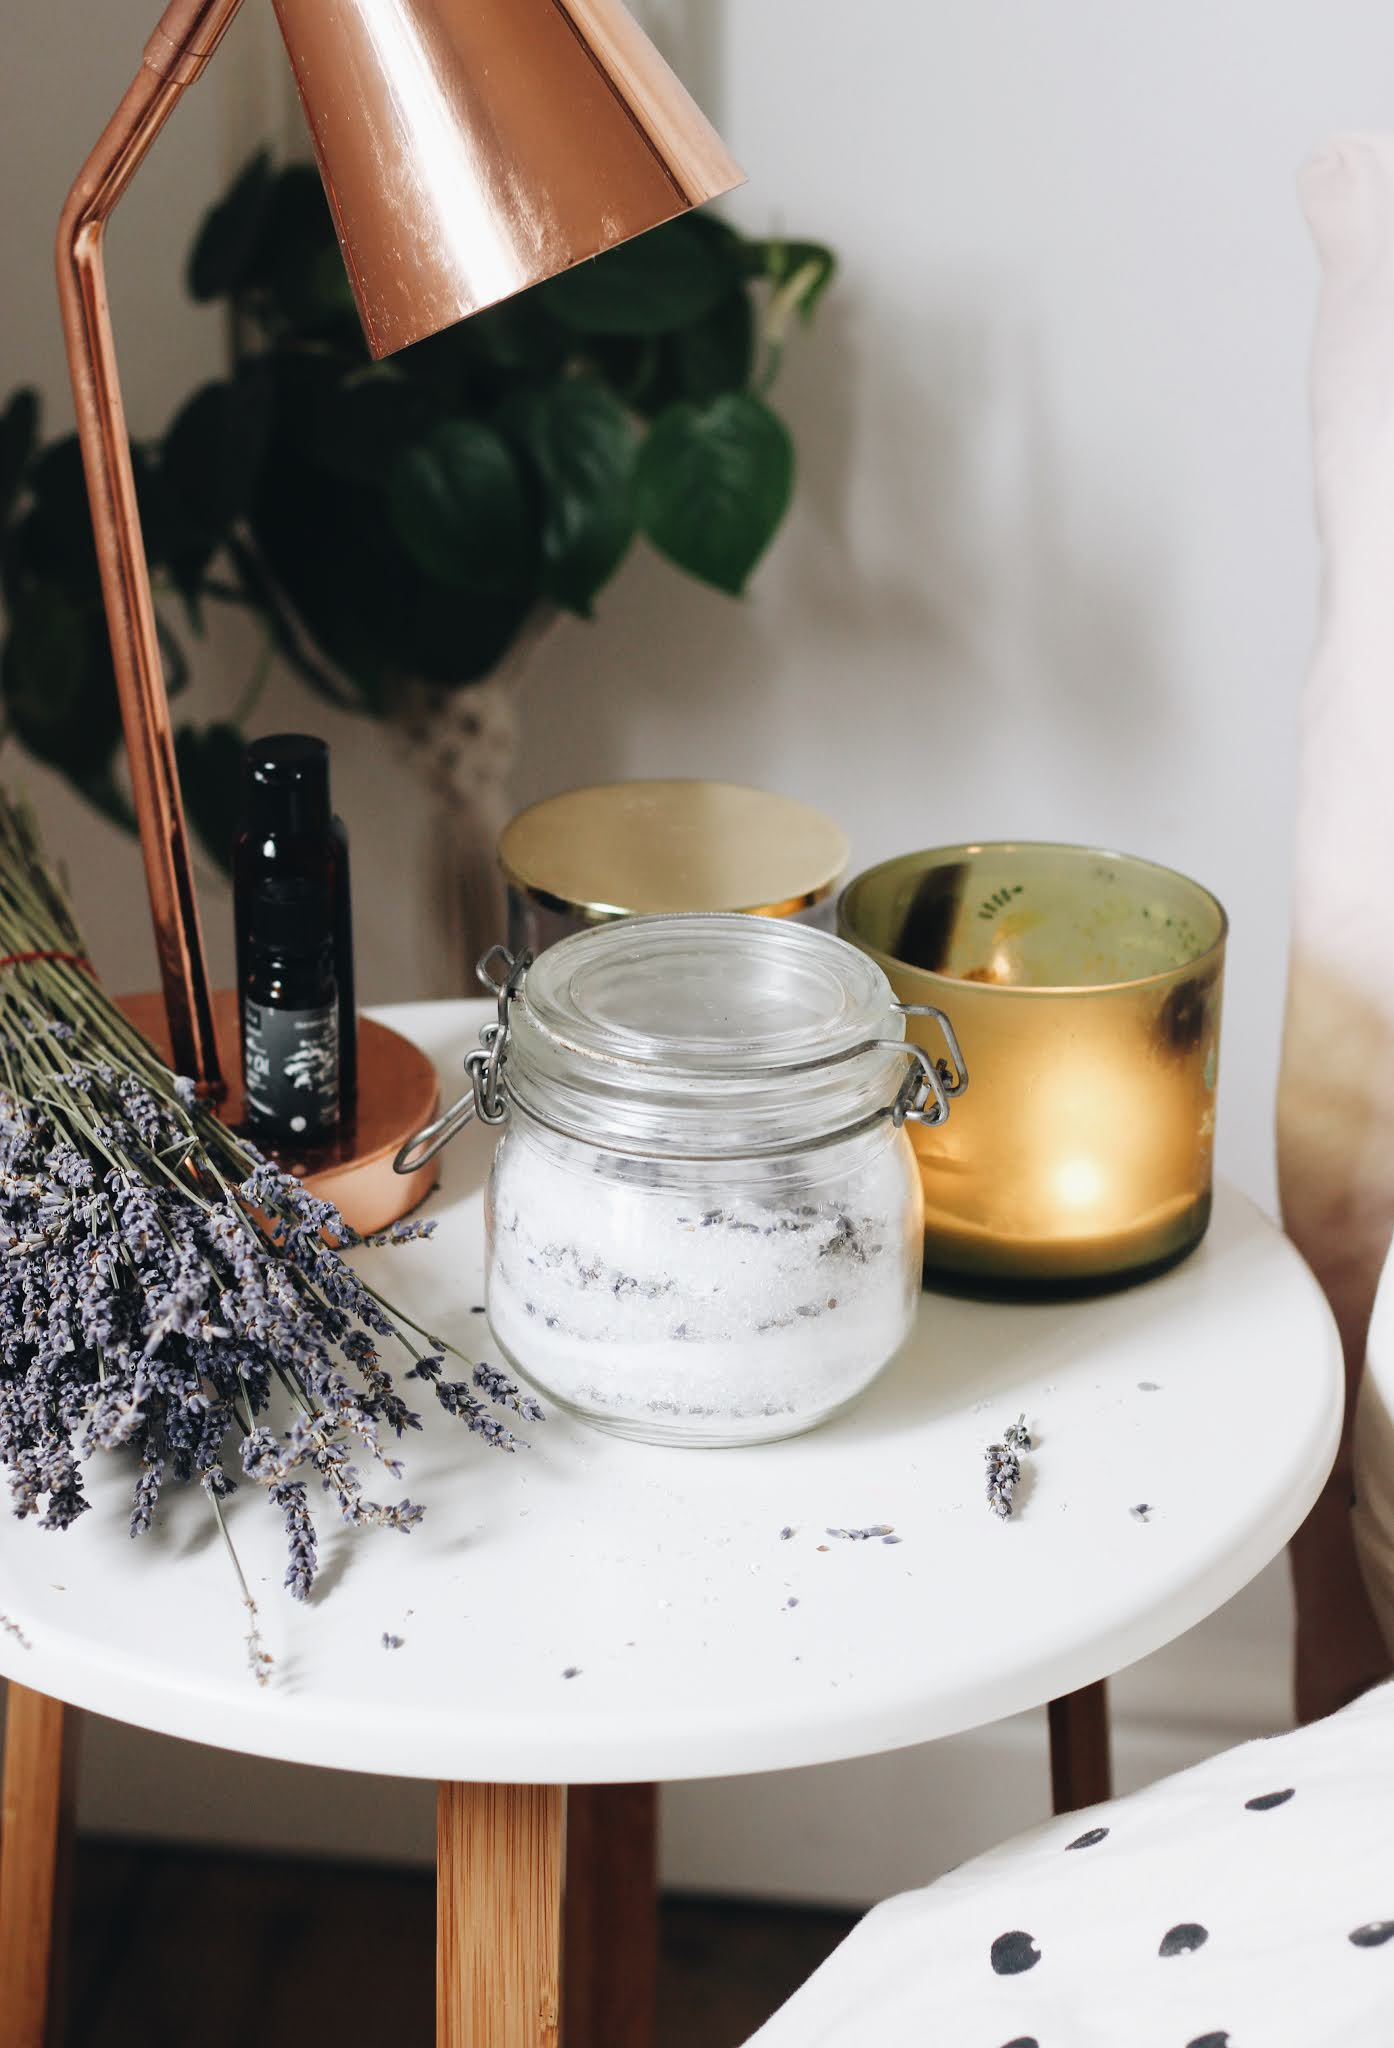 Lavender DIY Bath Soak Homemade